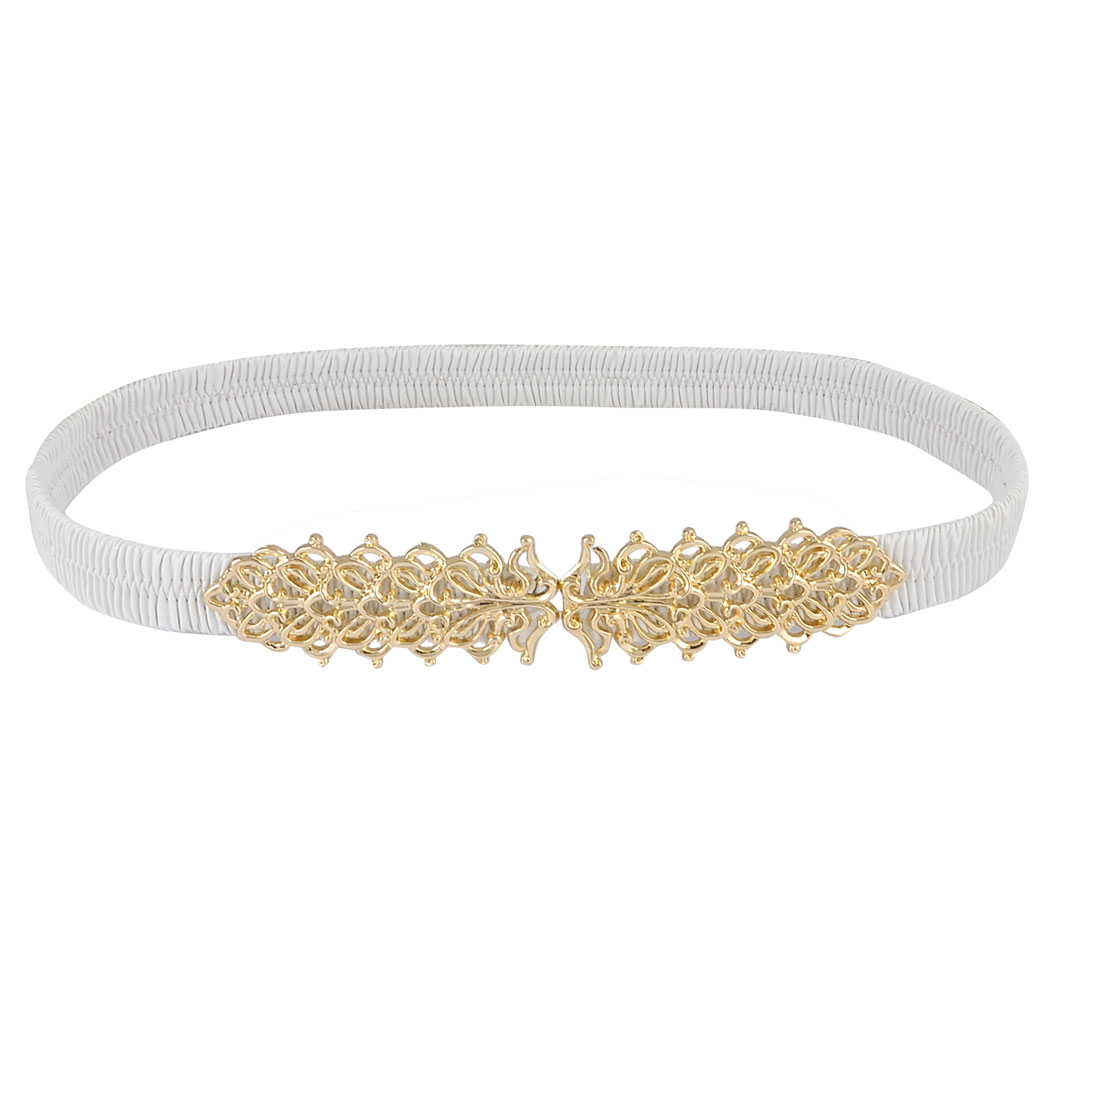 Women Floral Interlocking Closure Pleated Faux Leather Spandex Cinch Waist Belt White